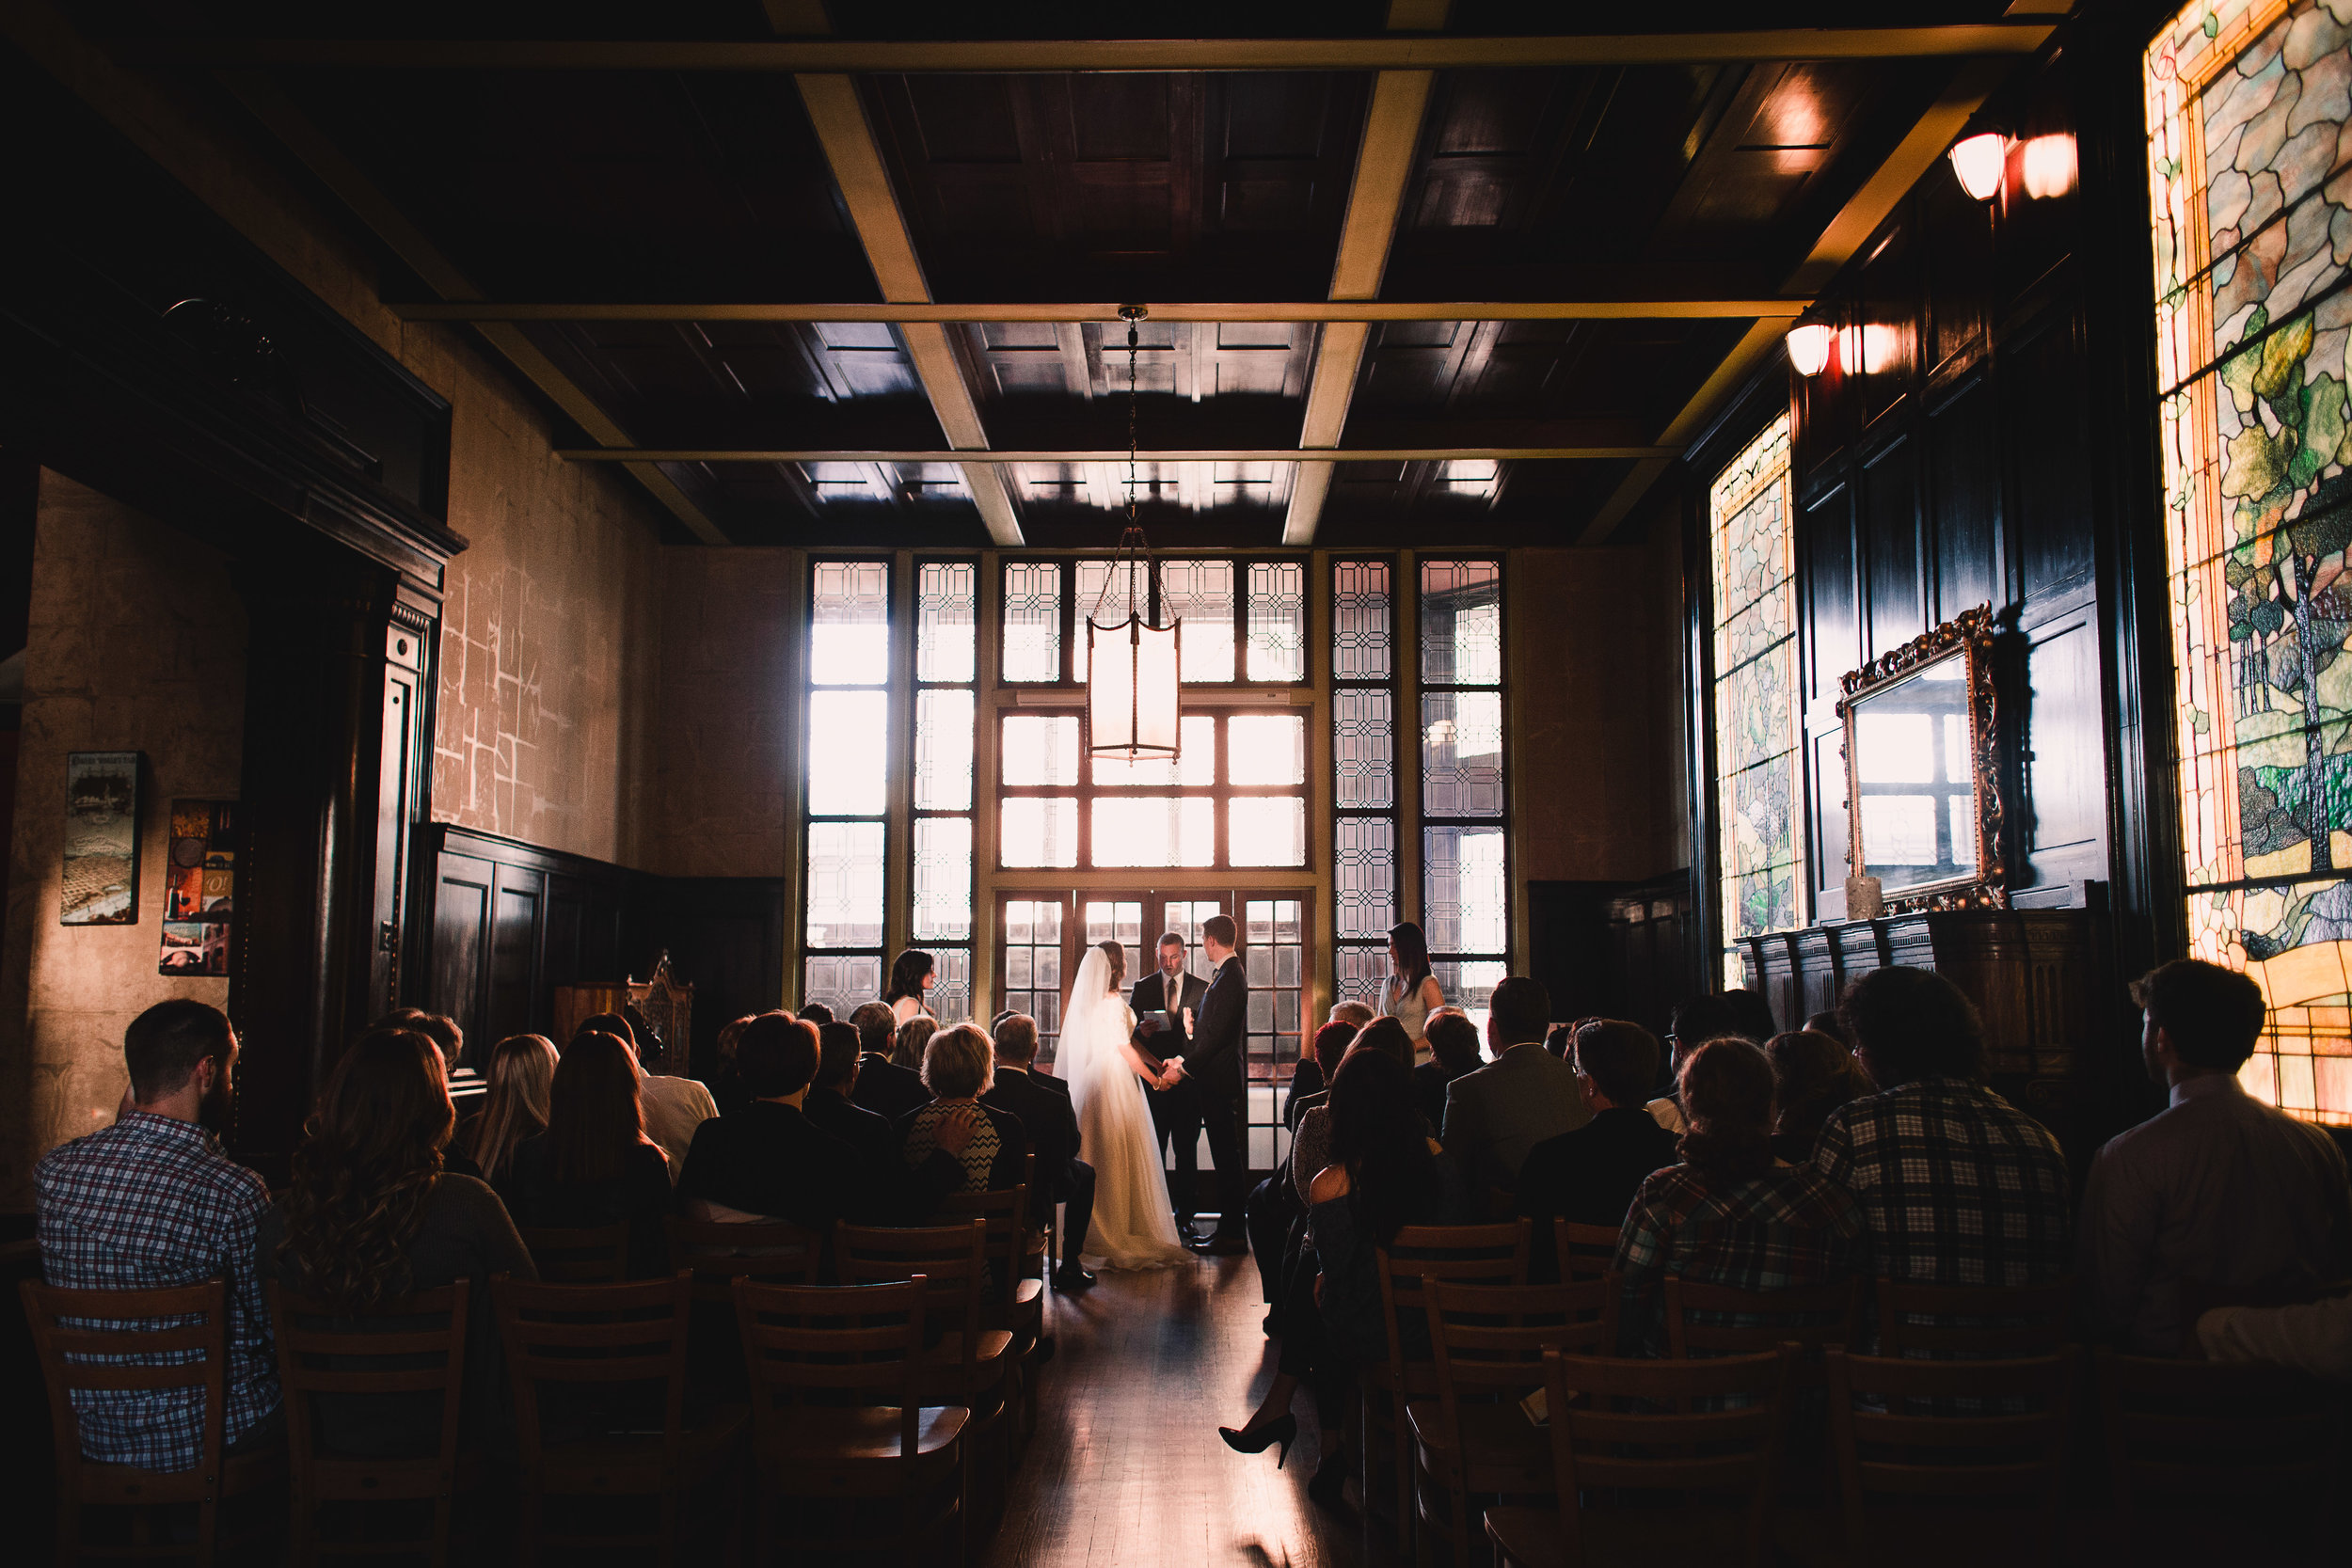 ALEX & NICOLE / OMAHA WEDDING / LUCILE'S OLD MARKET AND LE BOUILLON